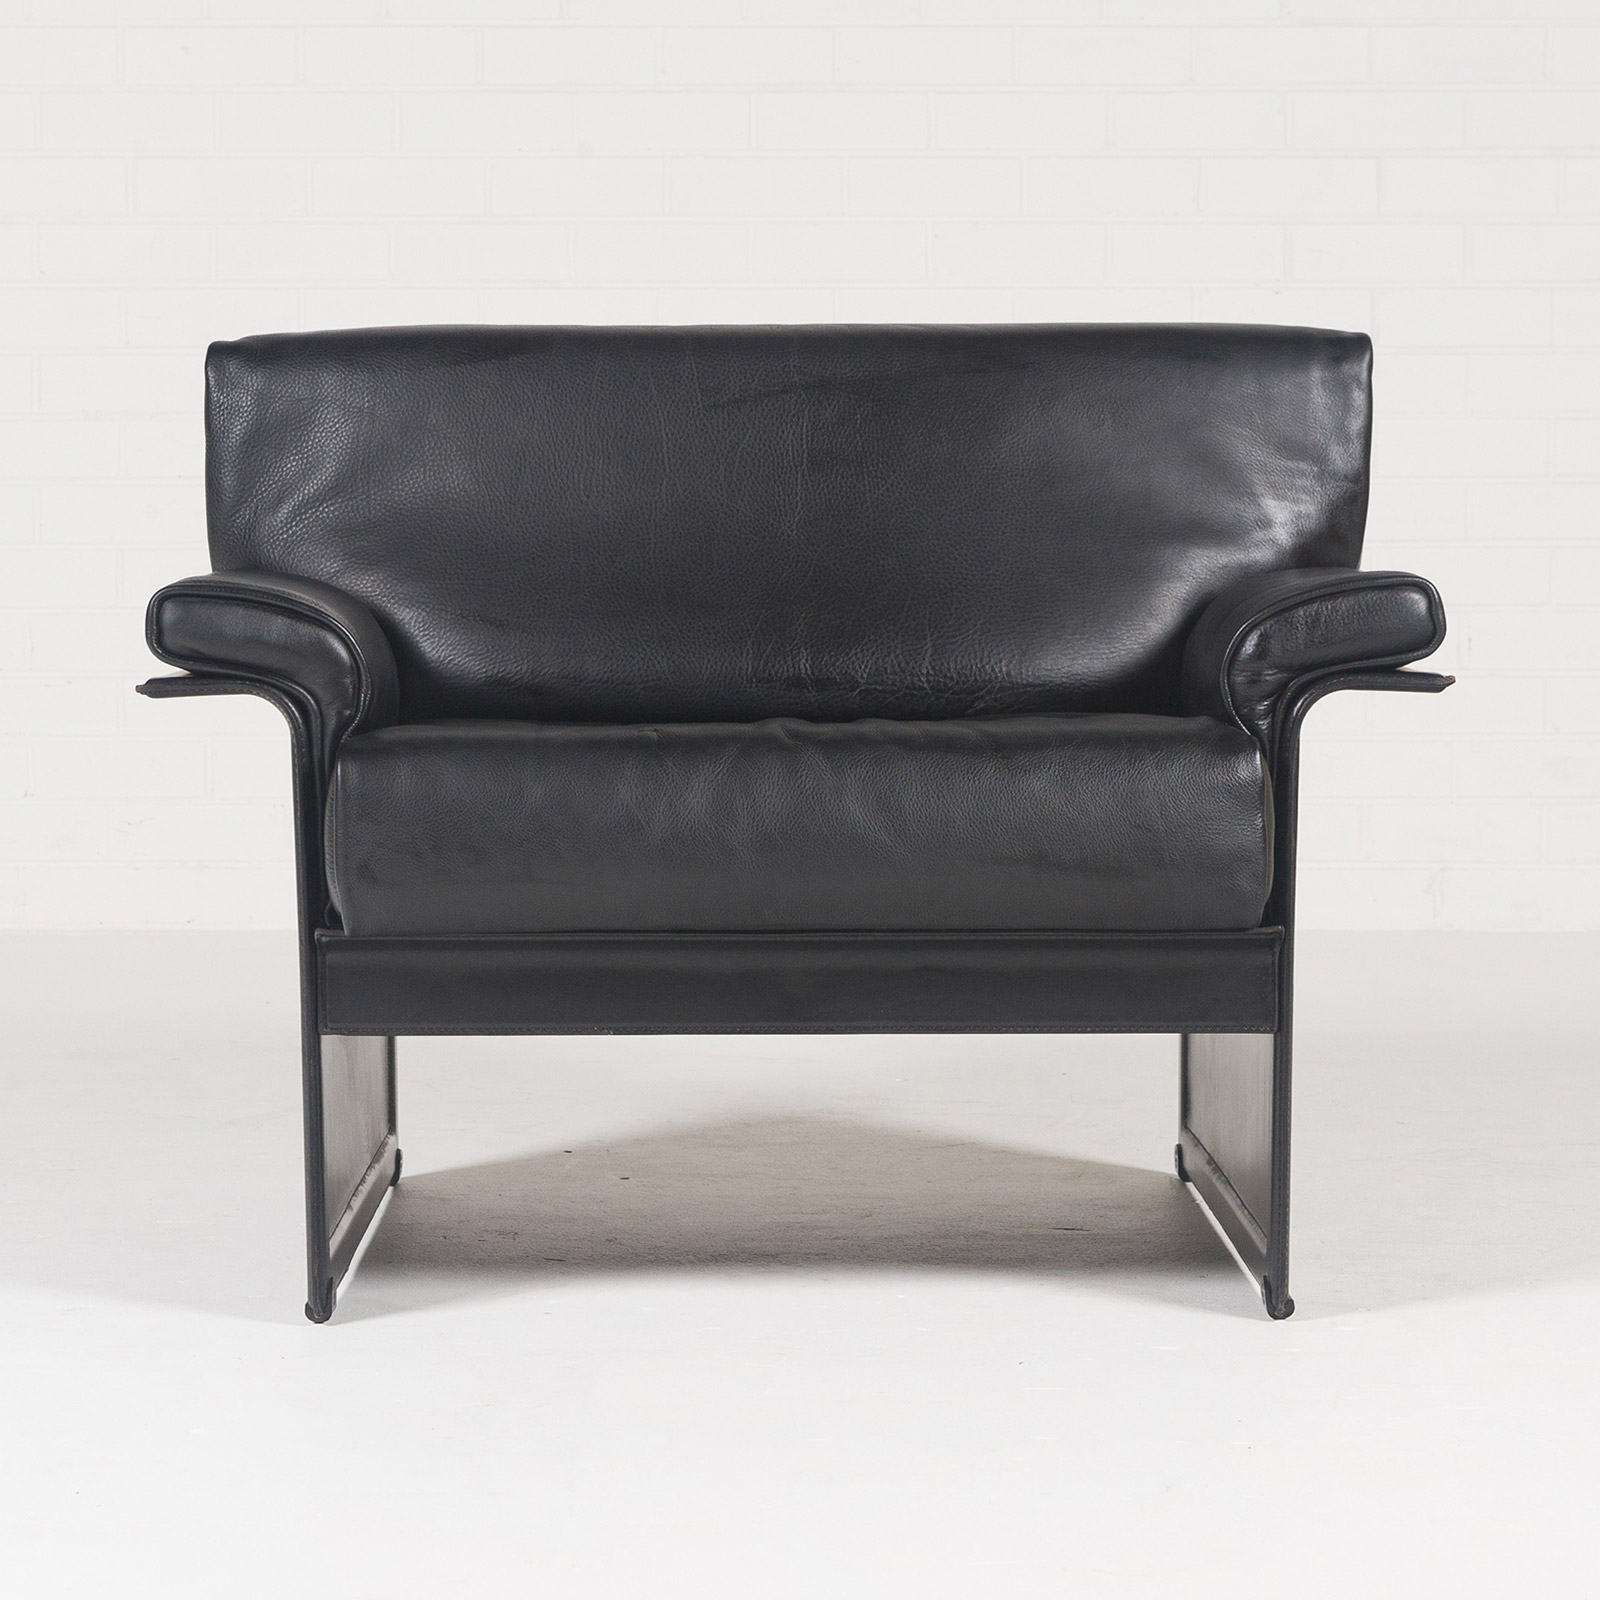 Awesome Armchair By Tito Agnoli For Matteo Grassi In Black Leather 1960s Italy 02